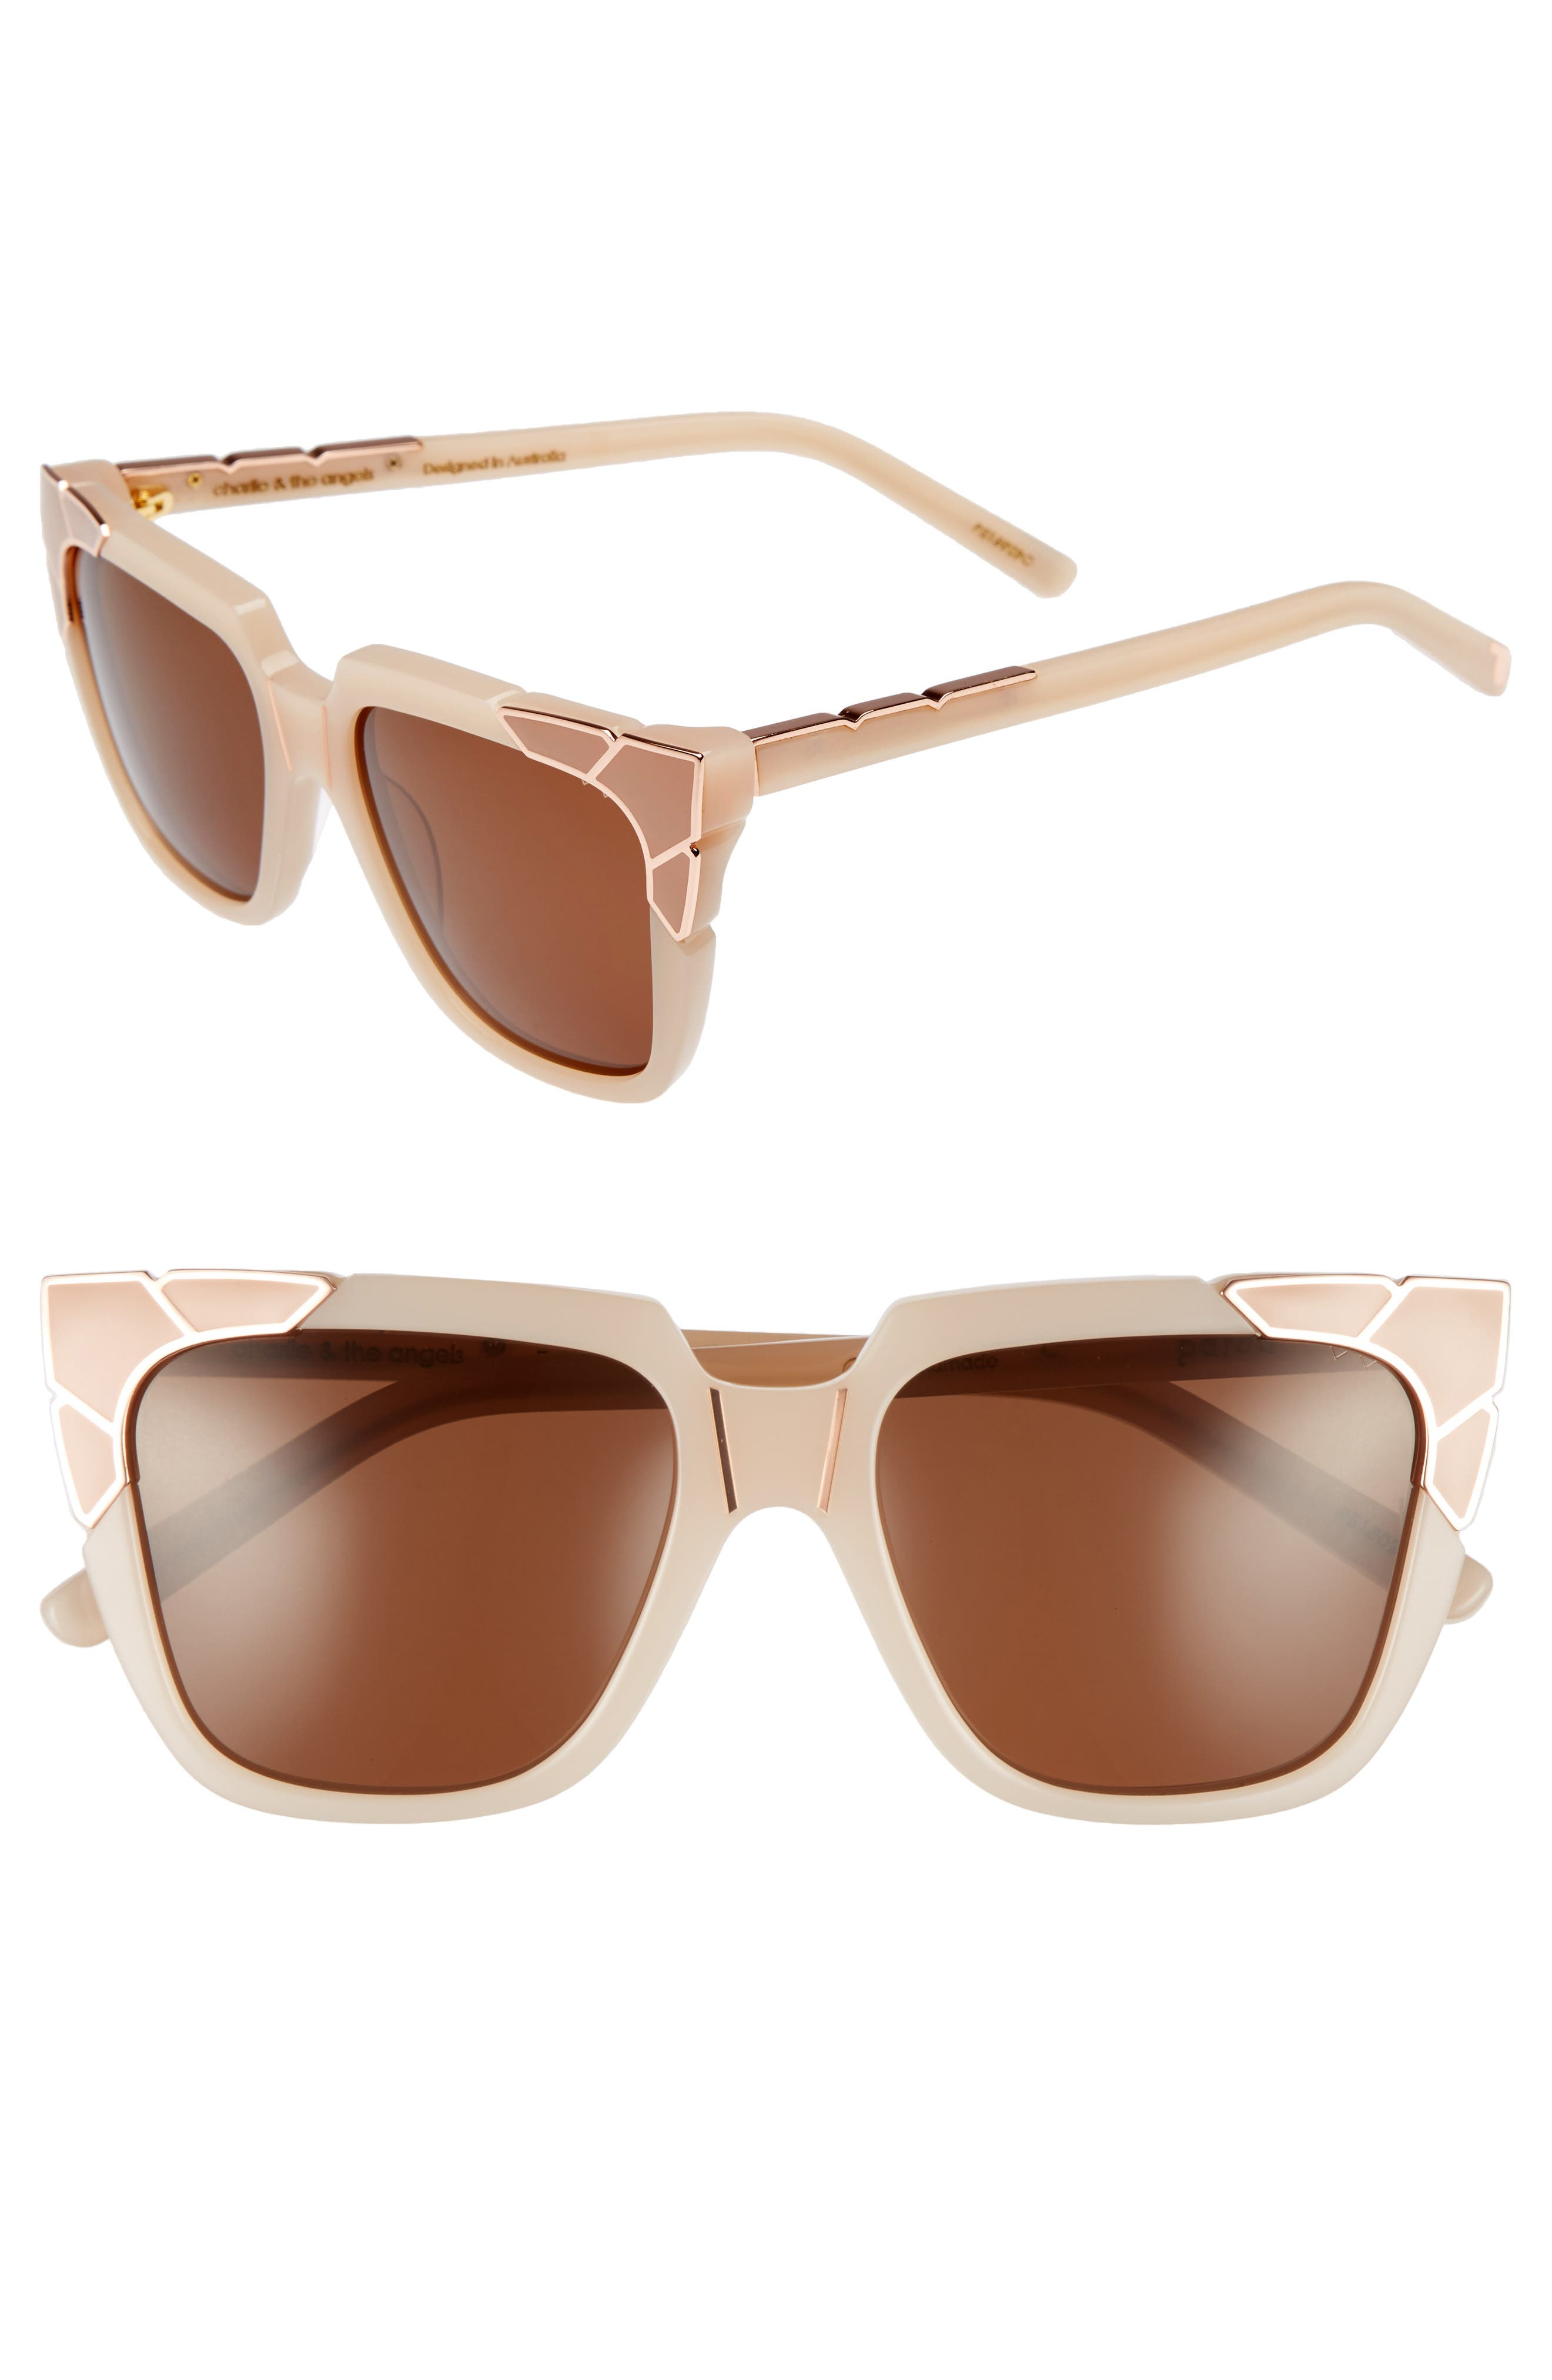 Charlie & the Angels 54mm Sunglasses,                         Main,                         color, Blush/ Rose Gold/ Blush Brown